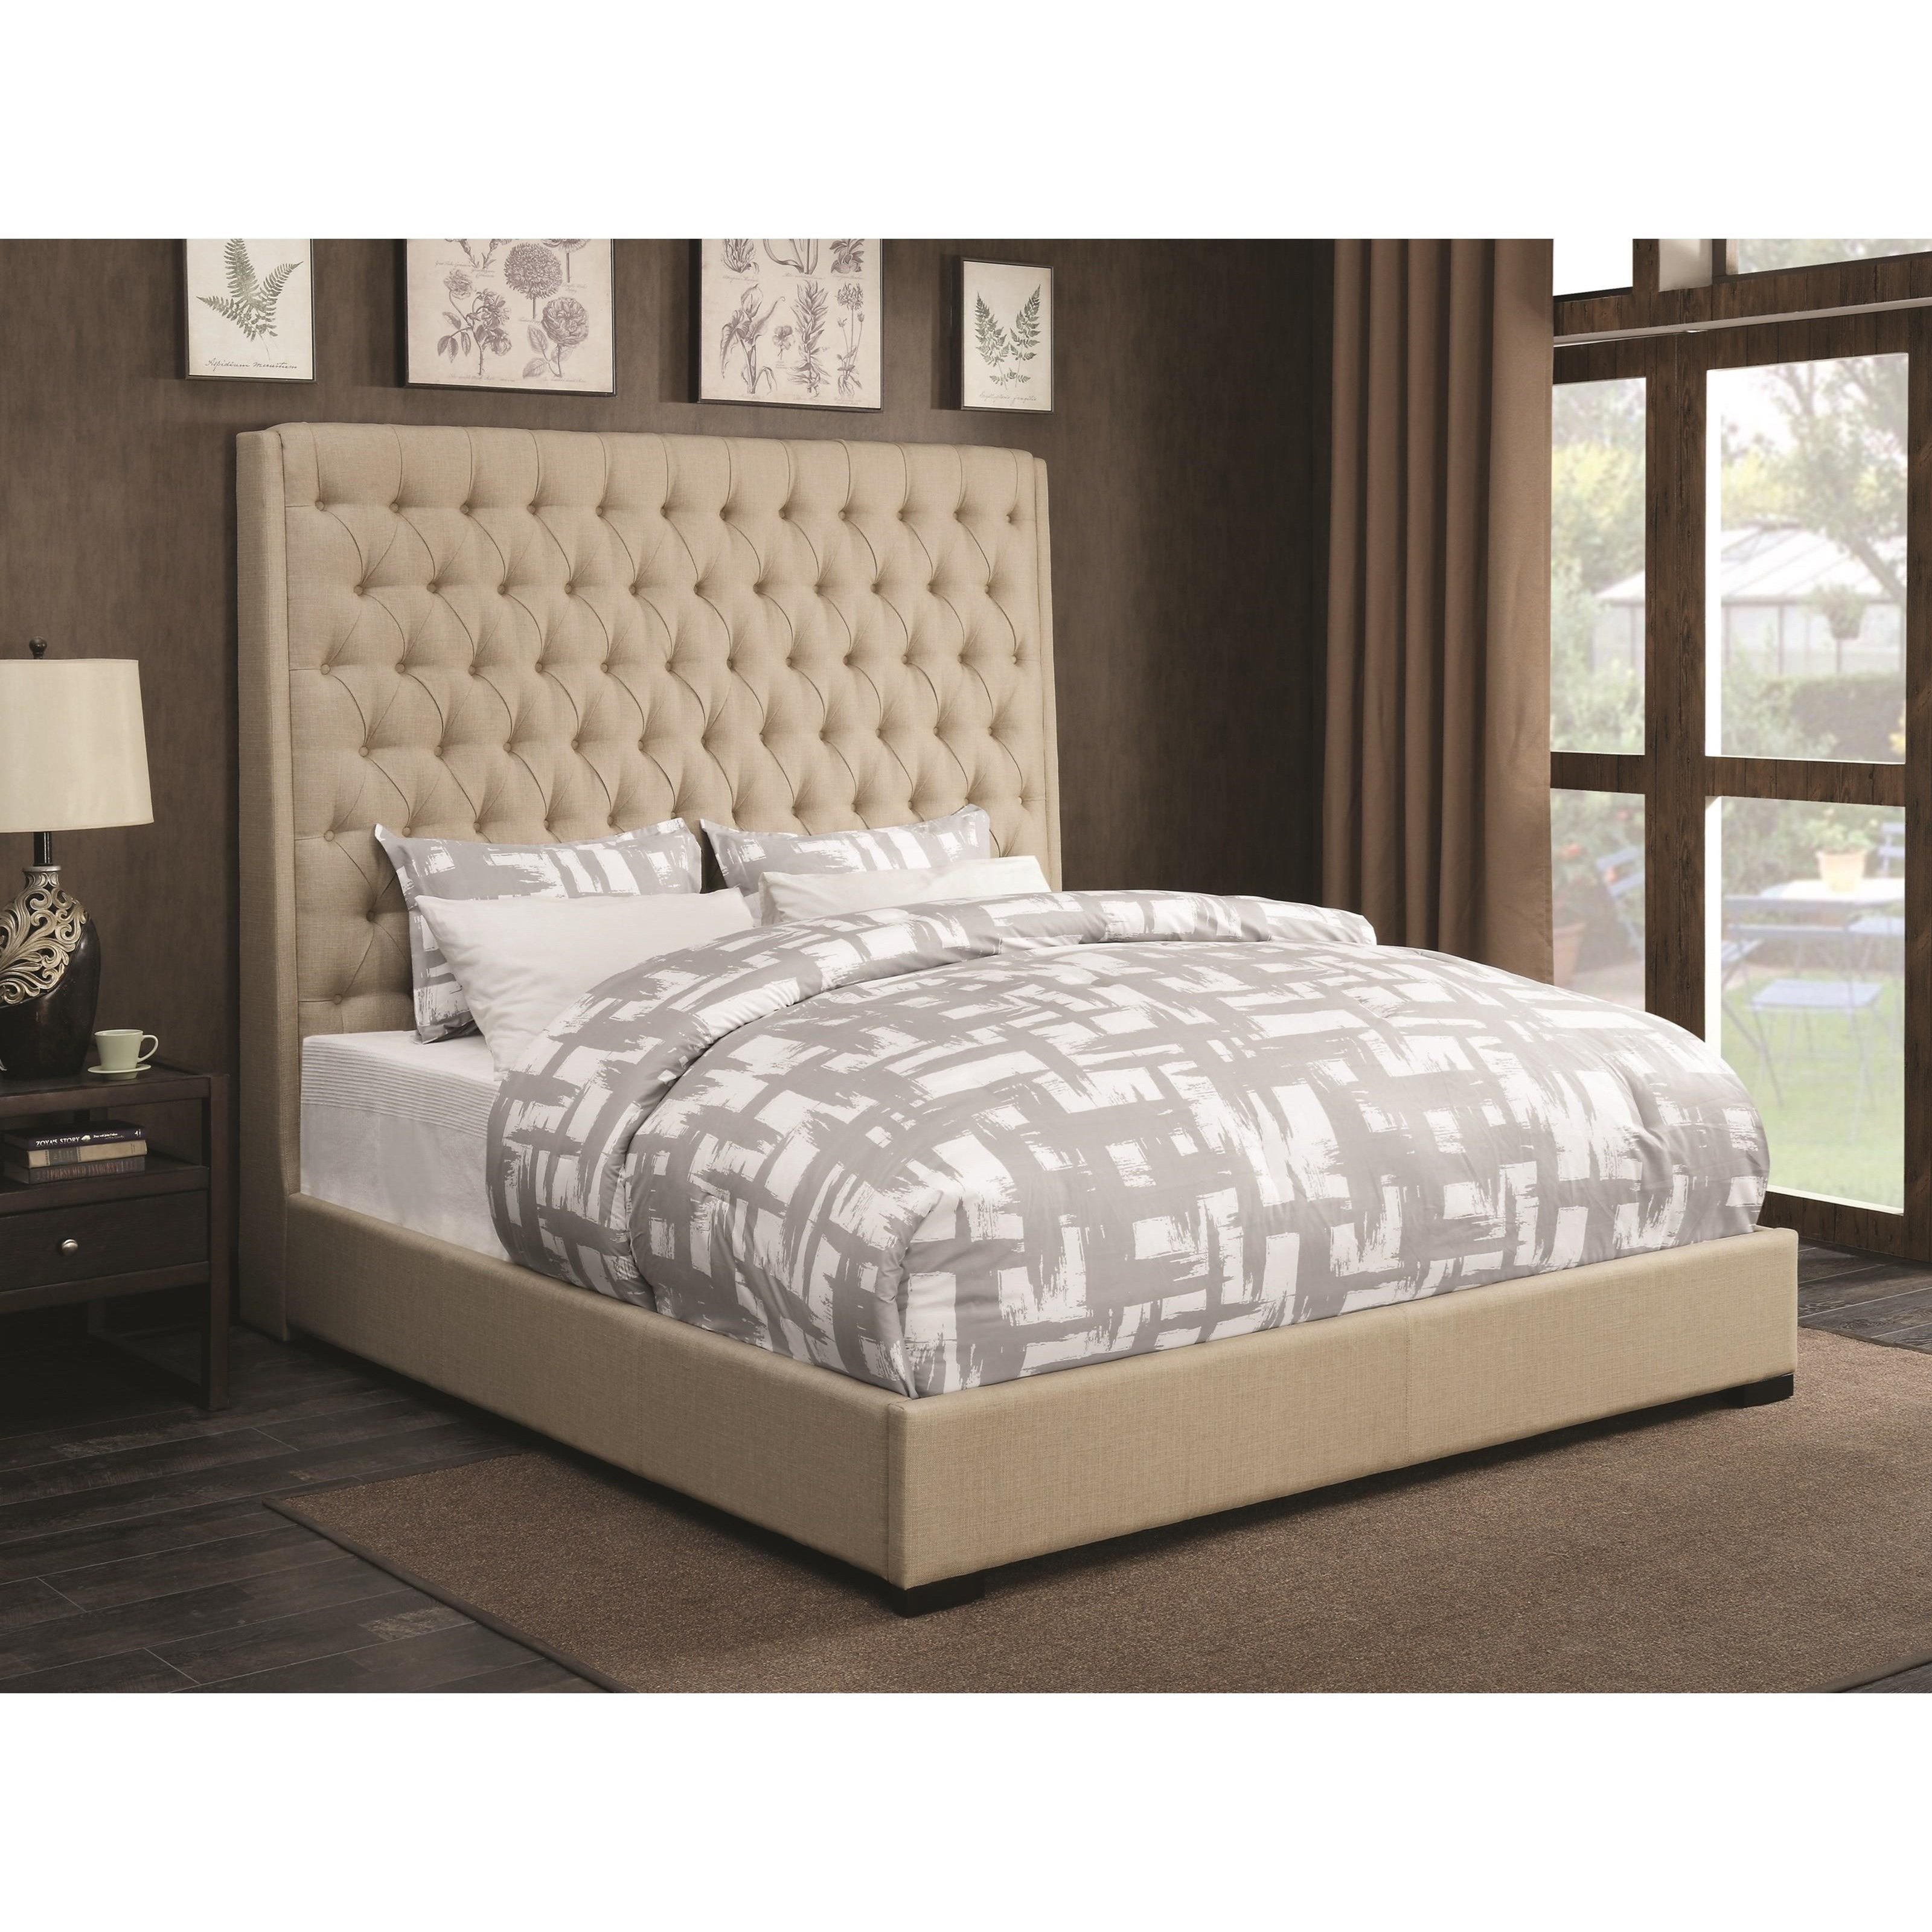 Coaster Upholstered Beds 300722q Upholstered Queen Bed